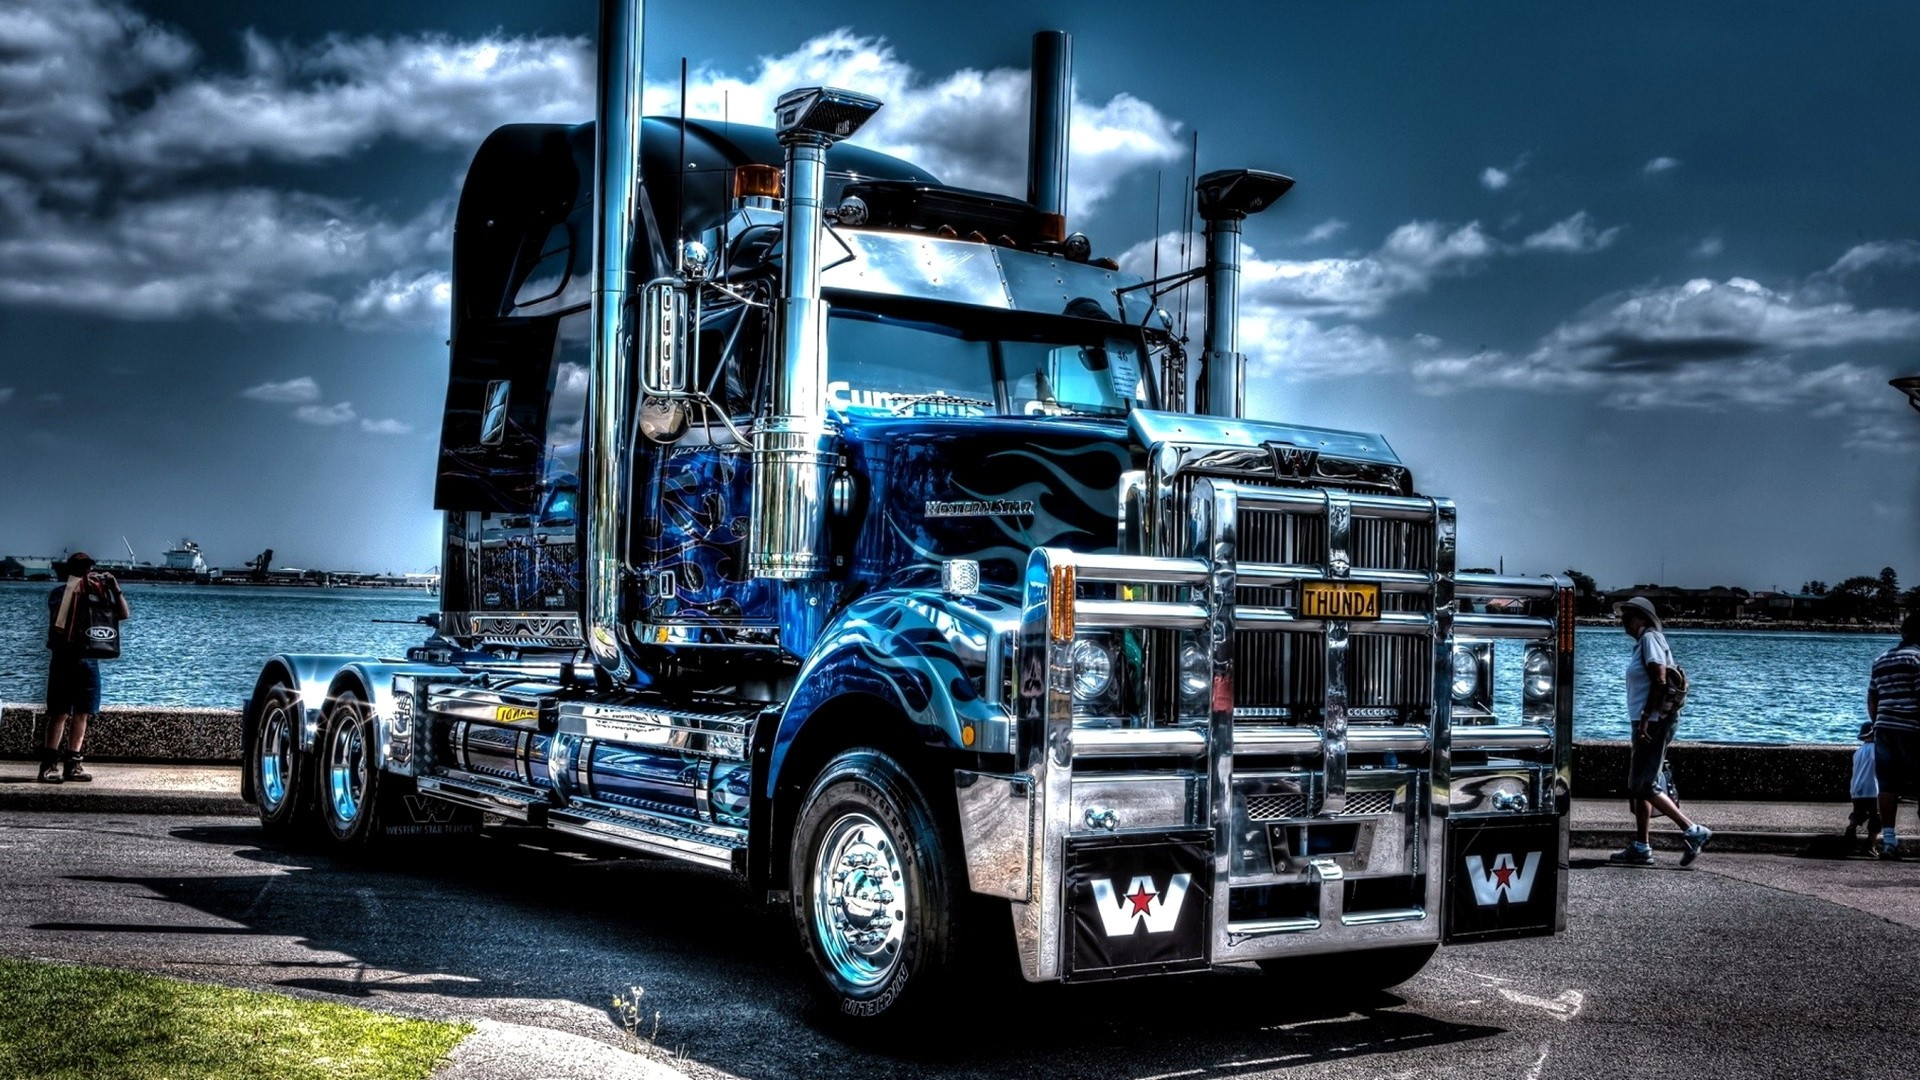 Truck Wallpaper theme